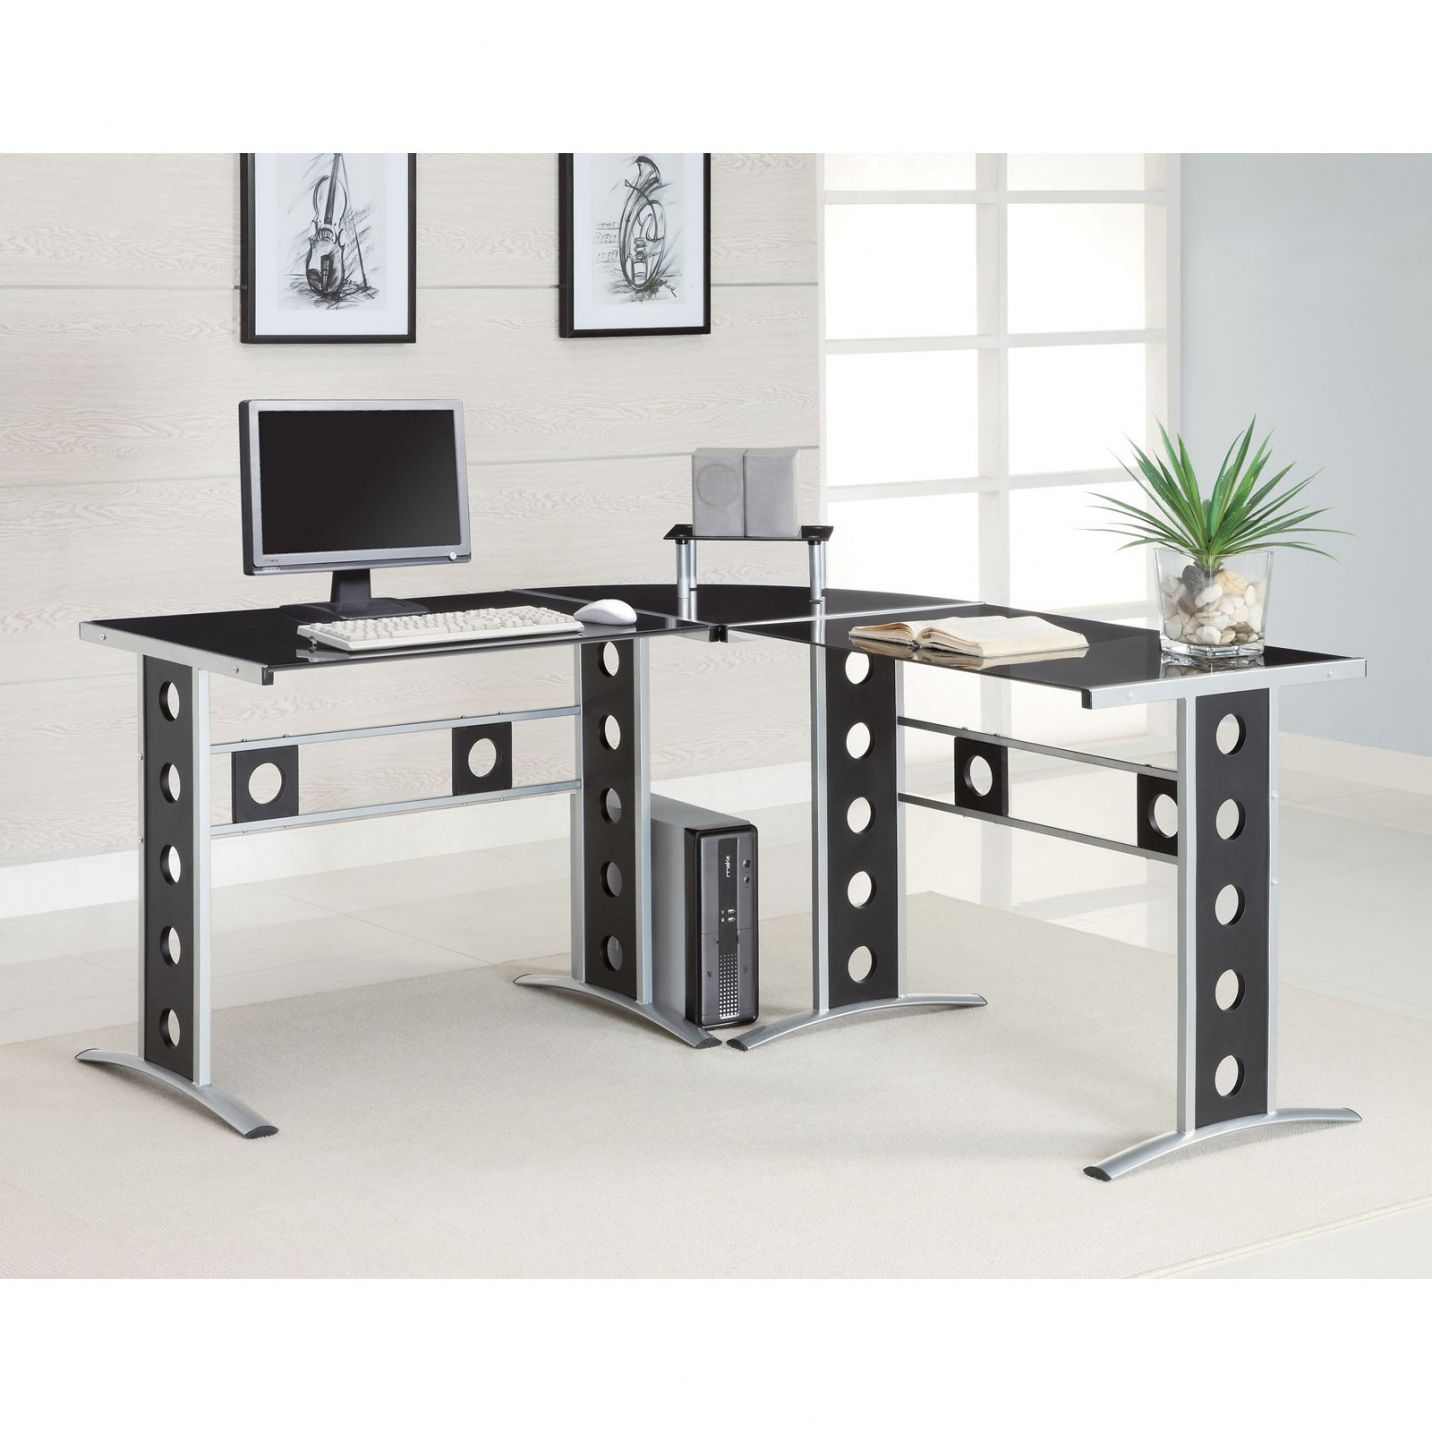 Modern L Shaped Computer Desk - Large Home Office Furniture Check ...